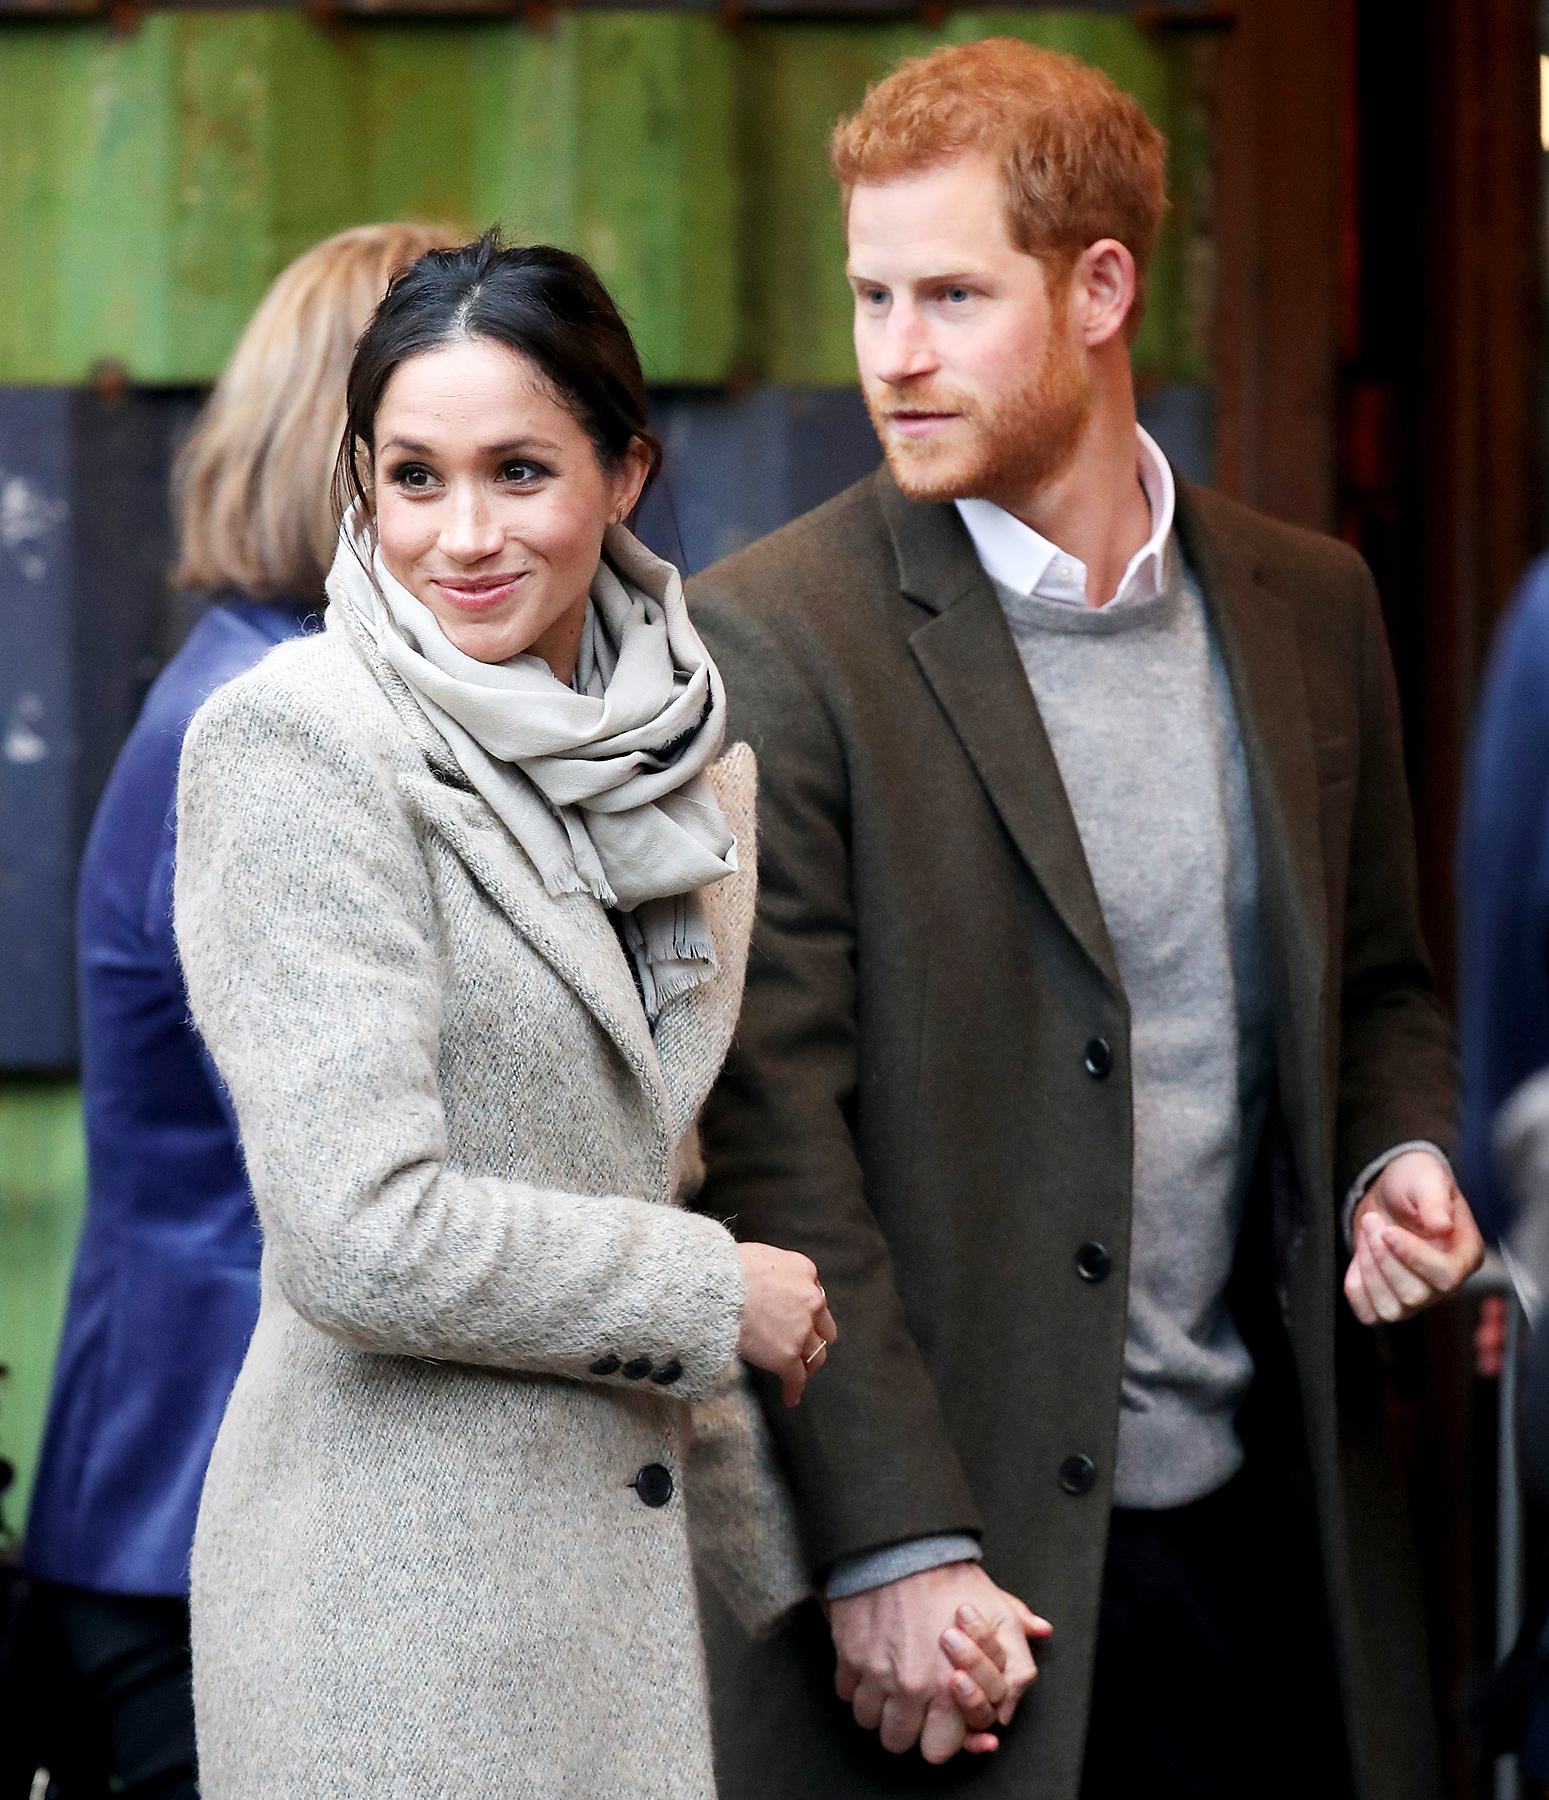 Meghan Markle Baptized at St. James Chapel